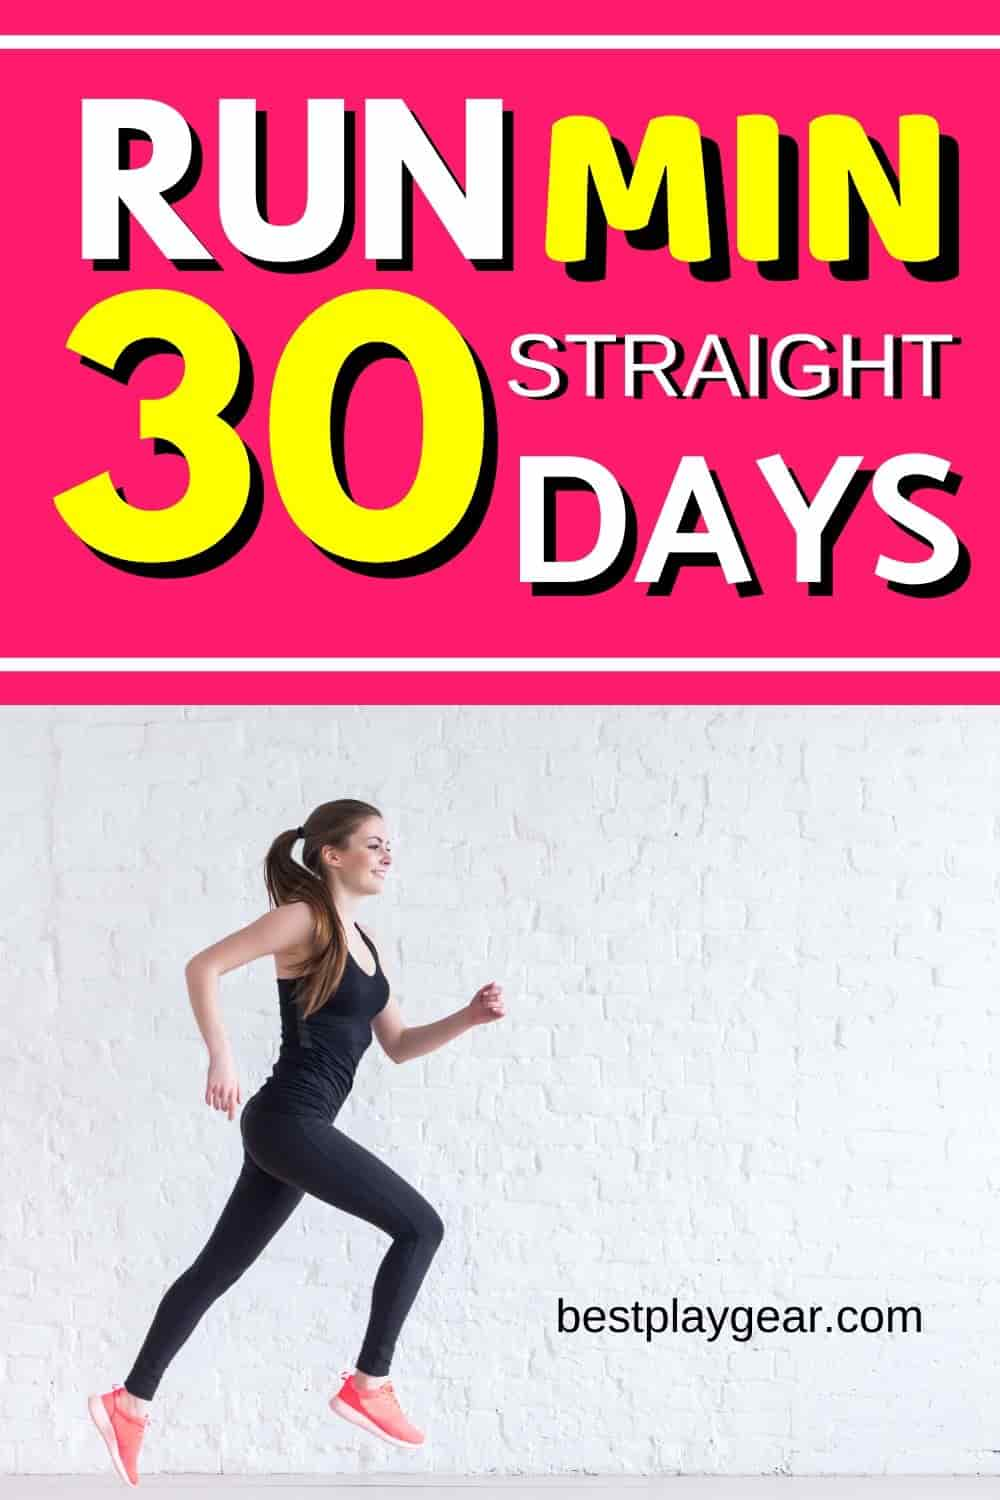 Run 30 min straight in 30 days with this running plan. If you cannot run for more than a couple of minutes and want to get in a great running shape then this 4 weeks running plan will help you to run non-stop for 30 min.